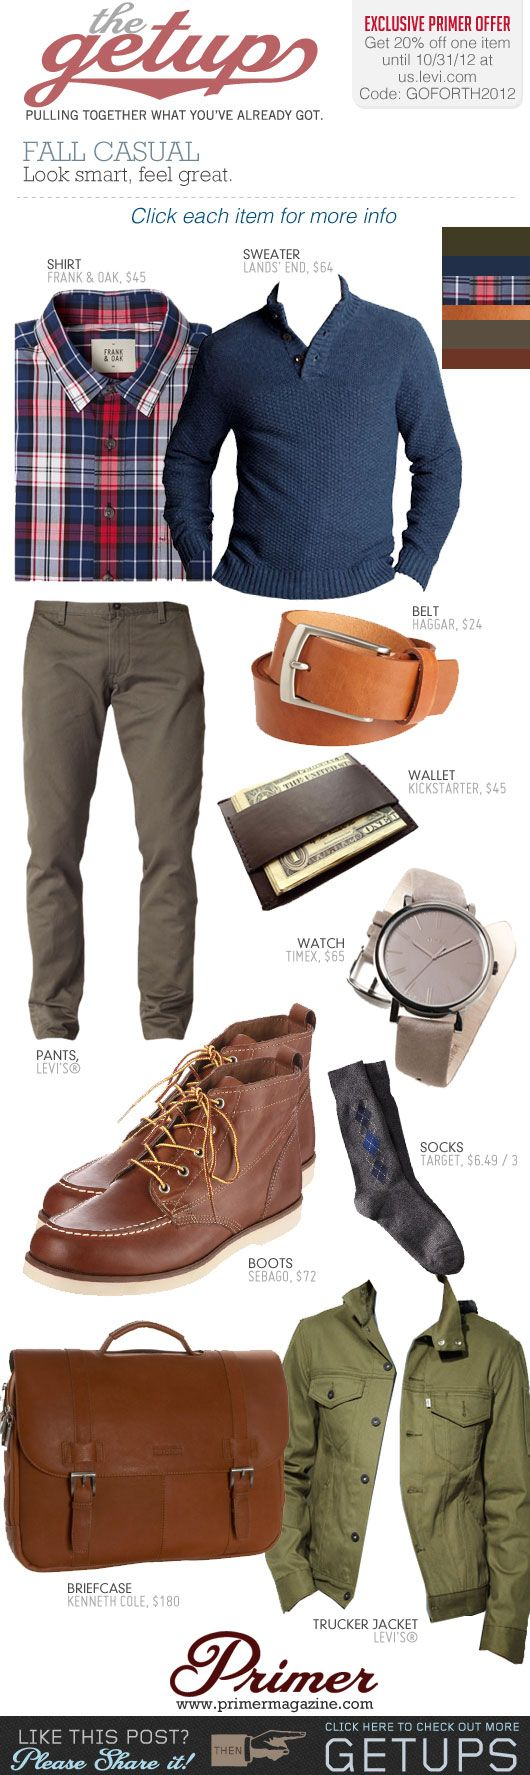 The Getup: Fall Casual & Exclusive 20% Off at us.levi.com | Primer #casual #menstyle #menswear